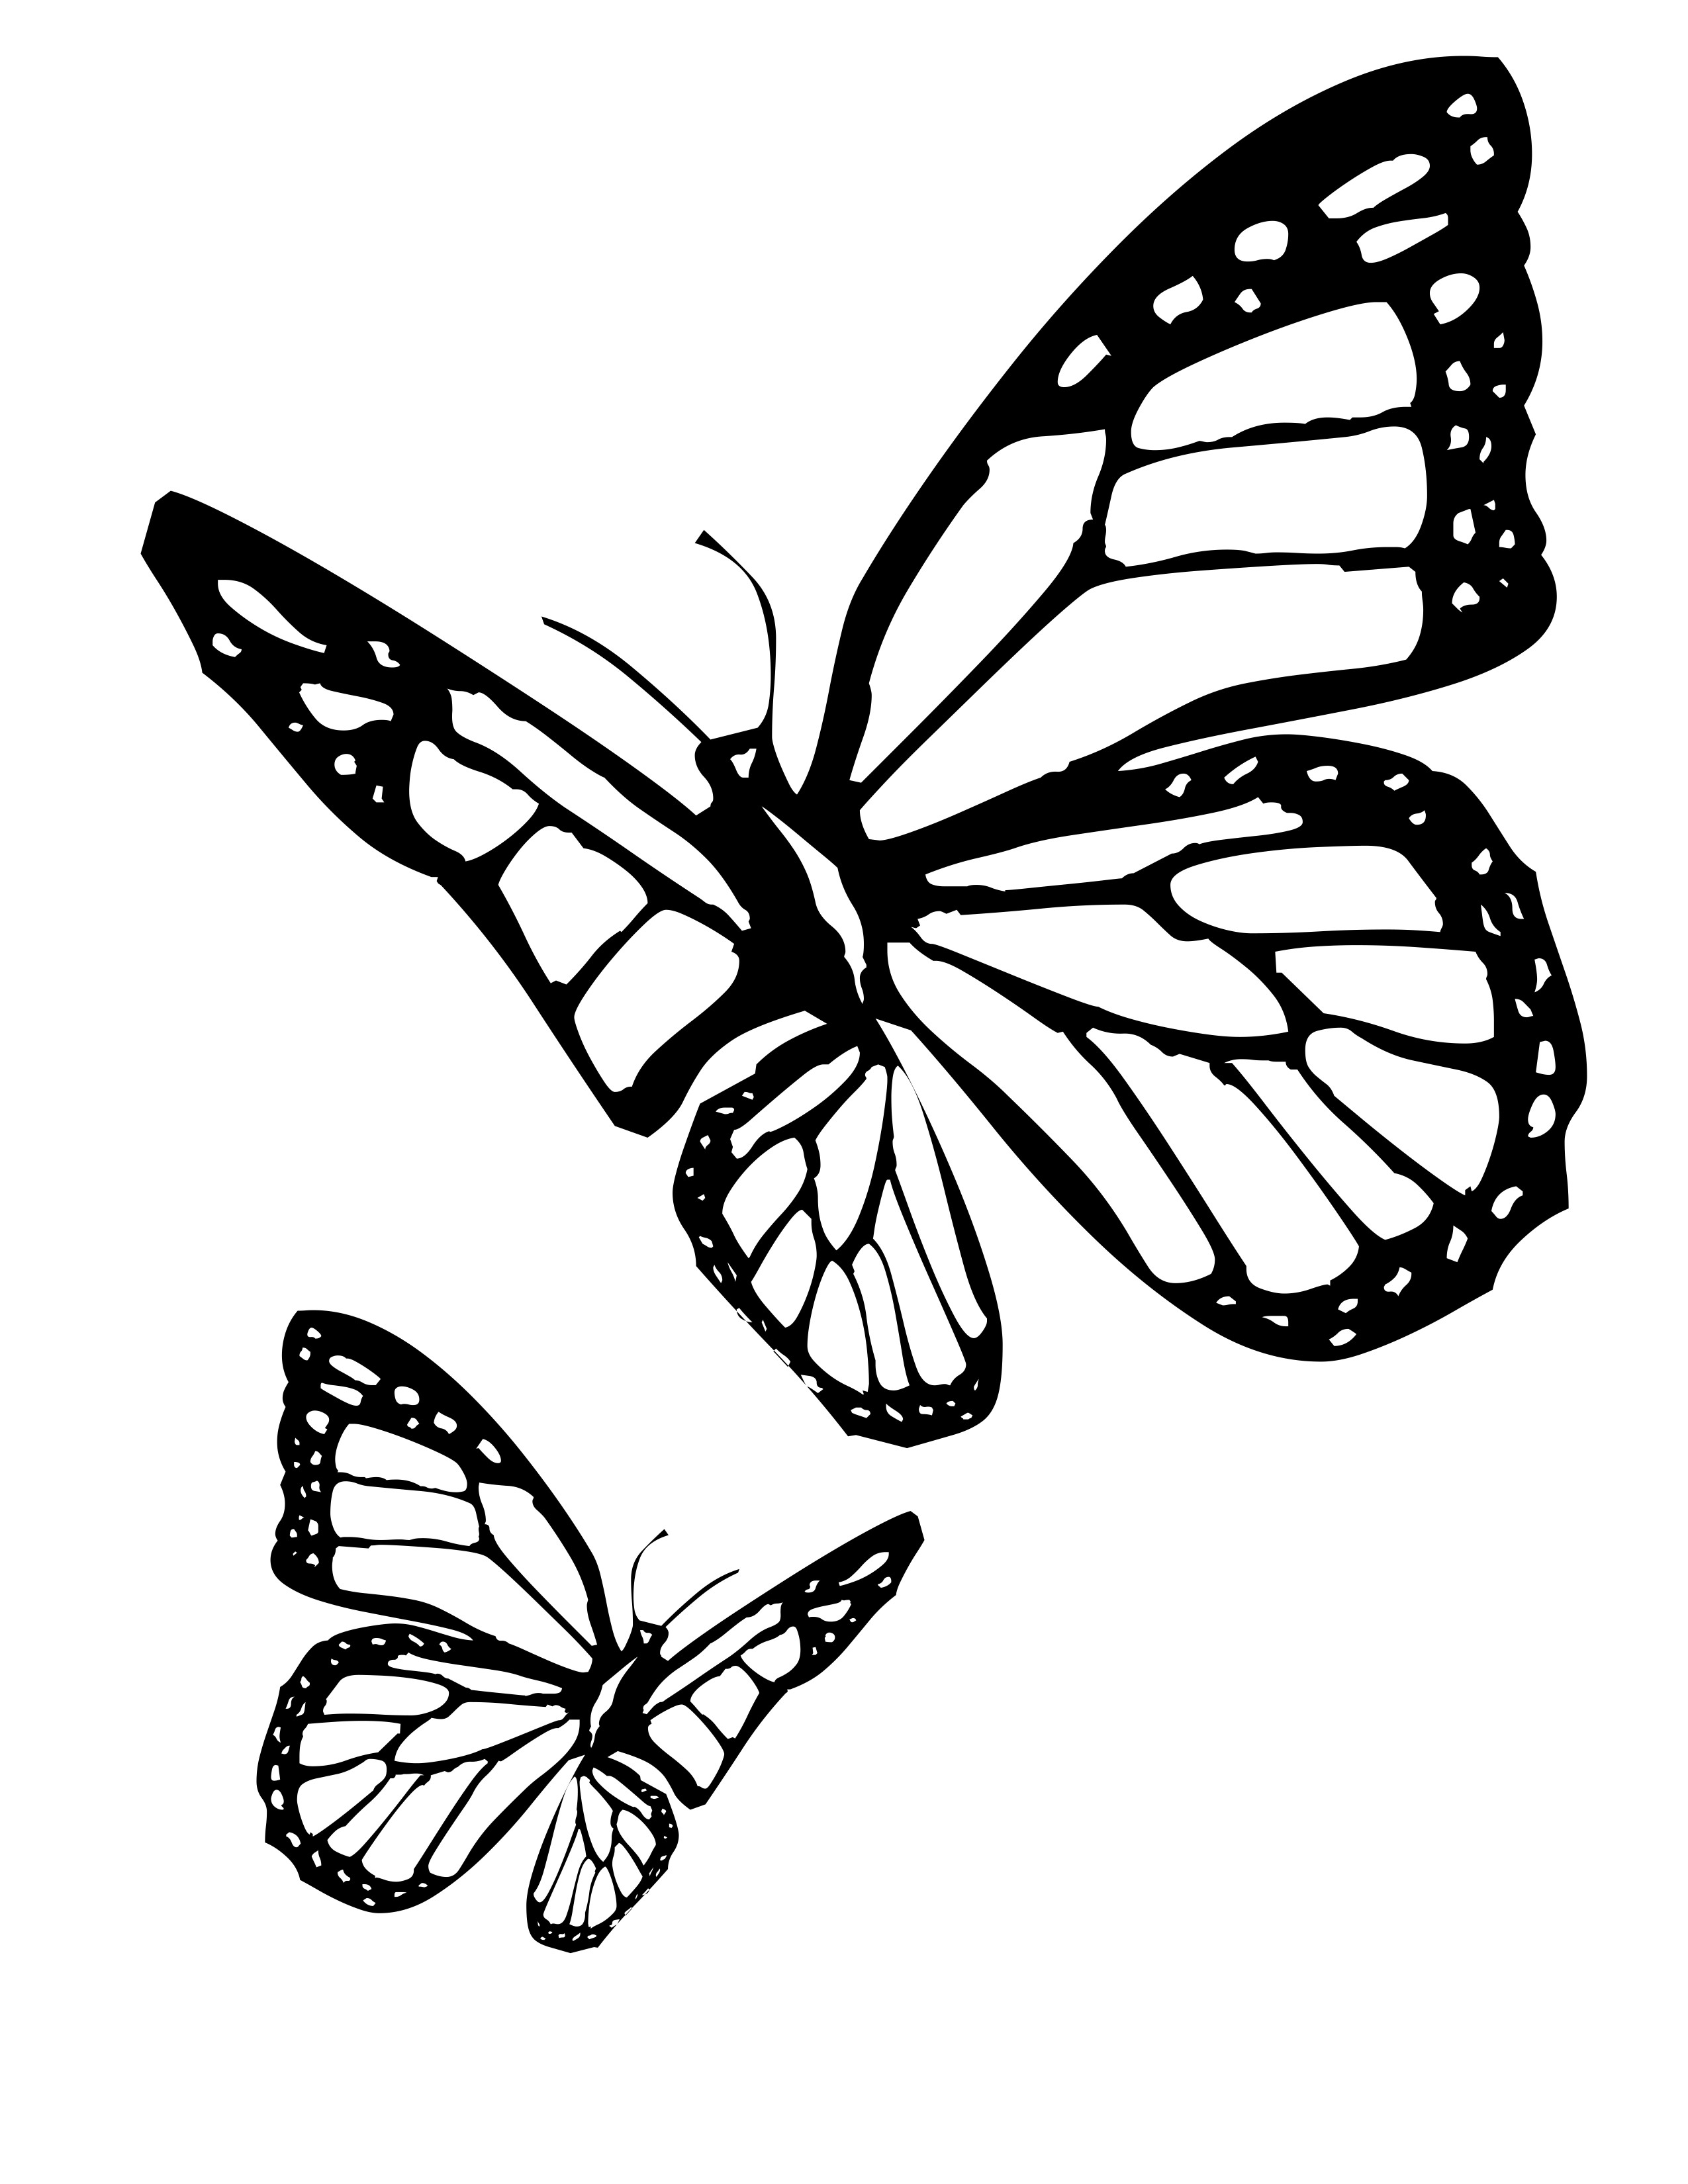 coloring worksheets butterfly butterfly coloring pages worksheets coloring butterfly